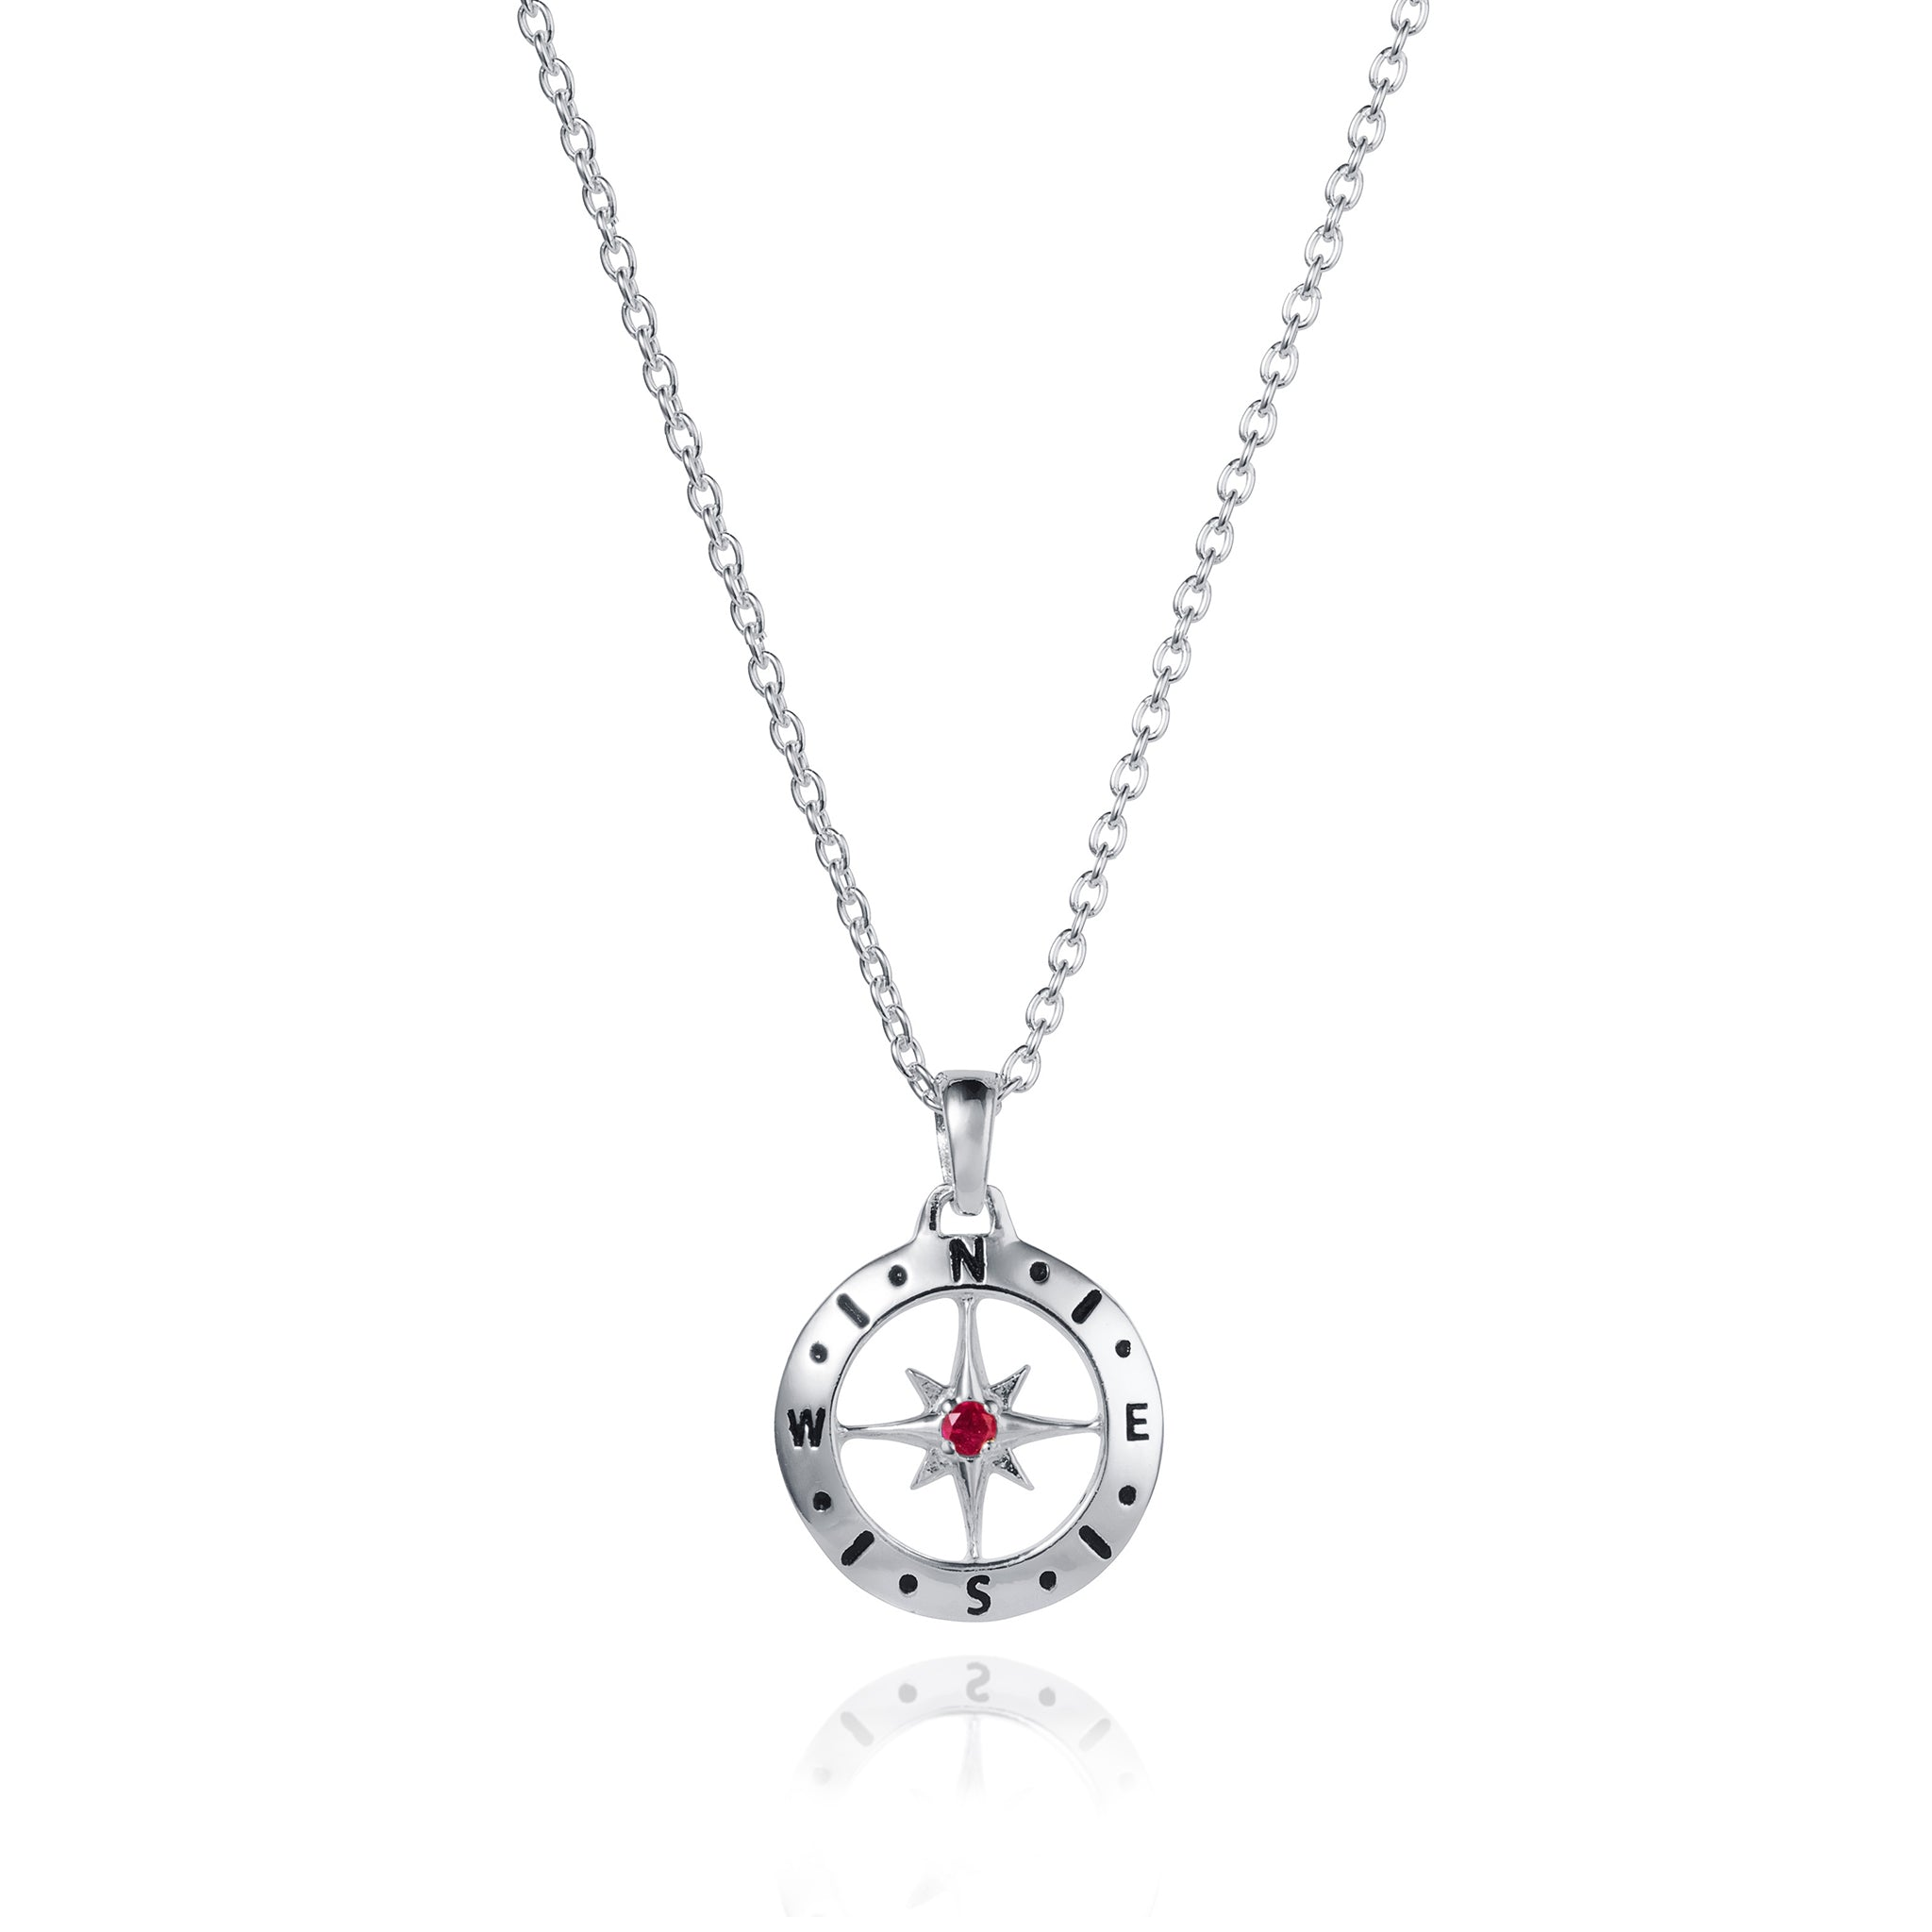 July Love's Compass Birthstone Silver & Ruby Necklace